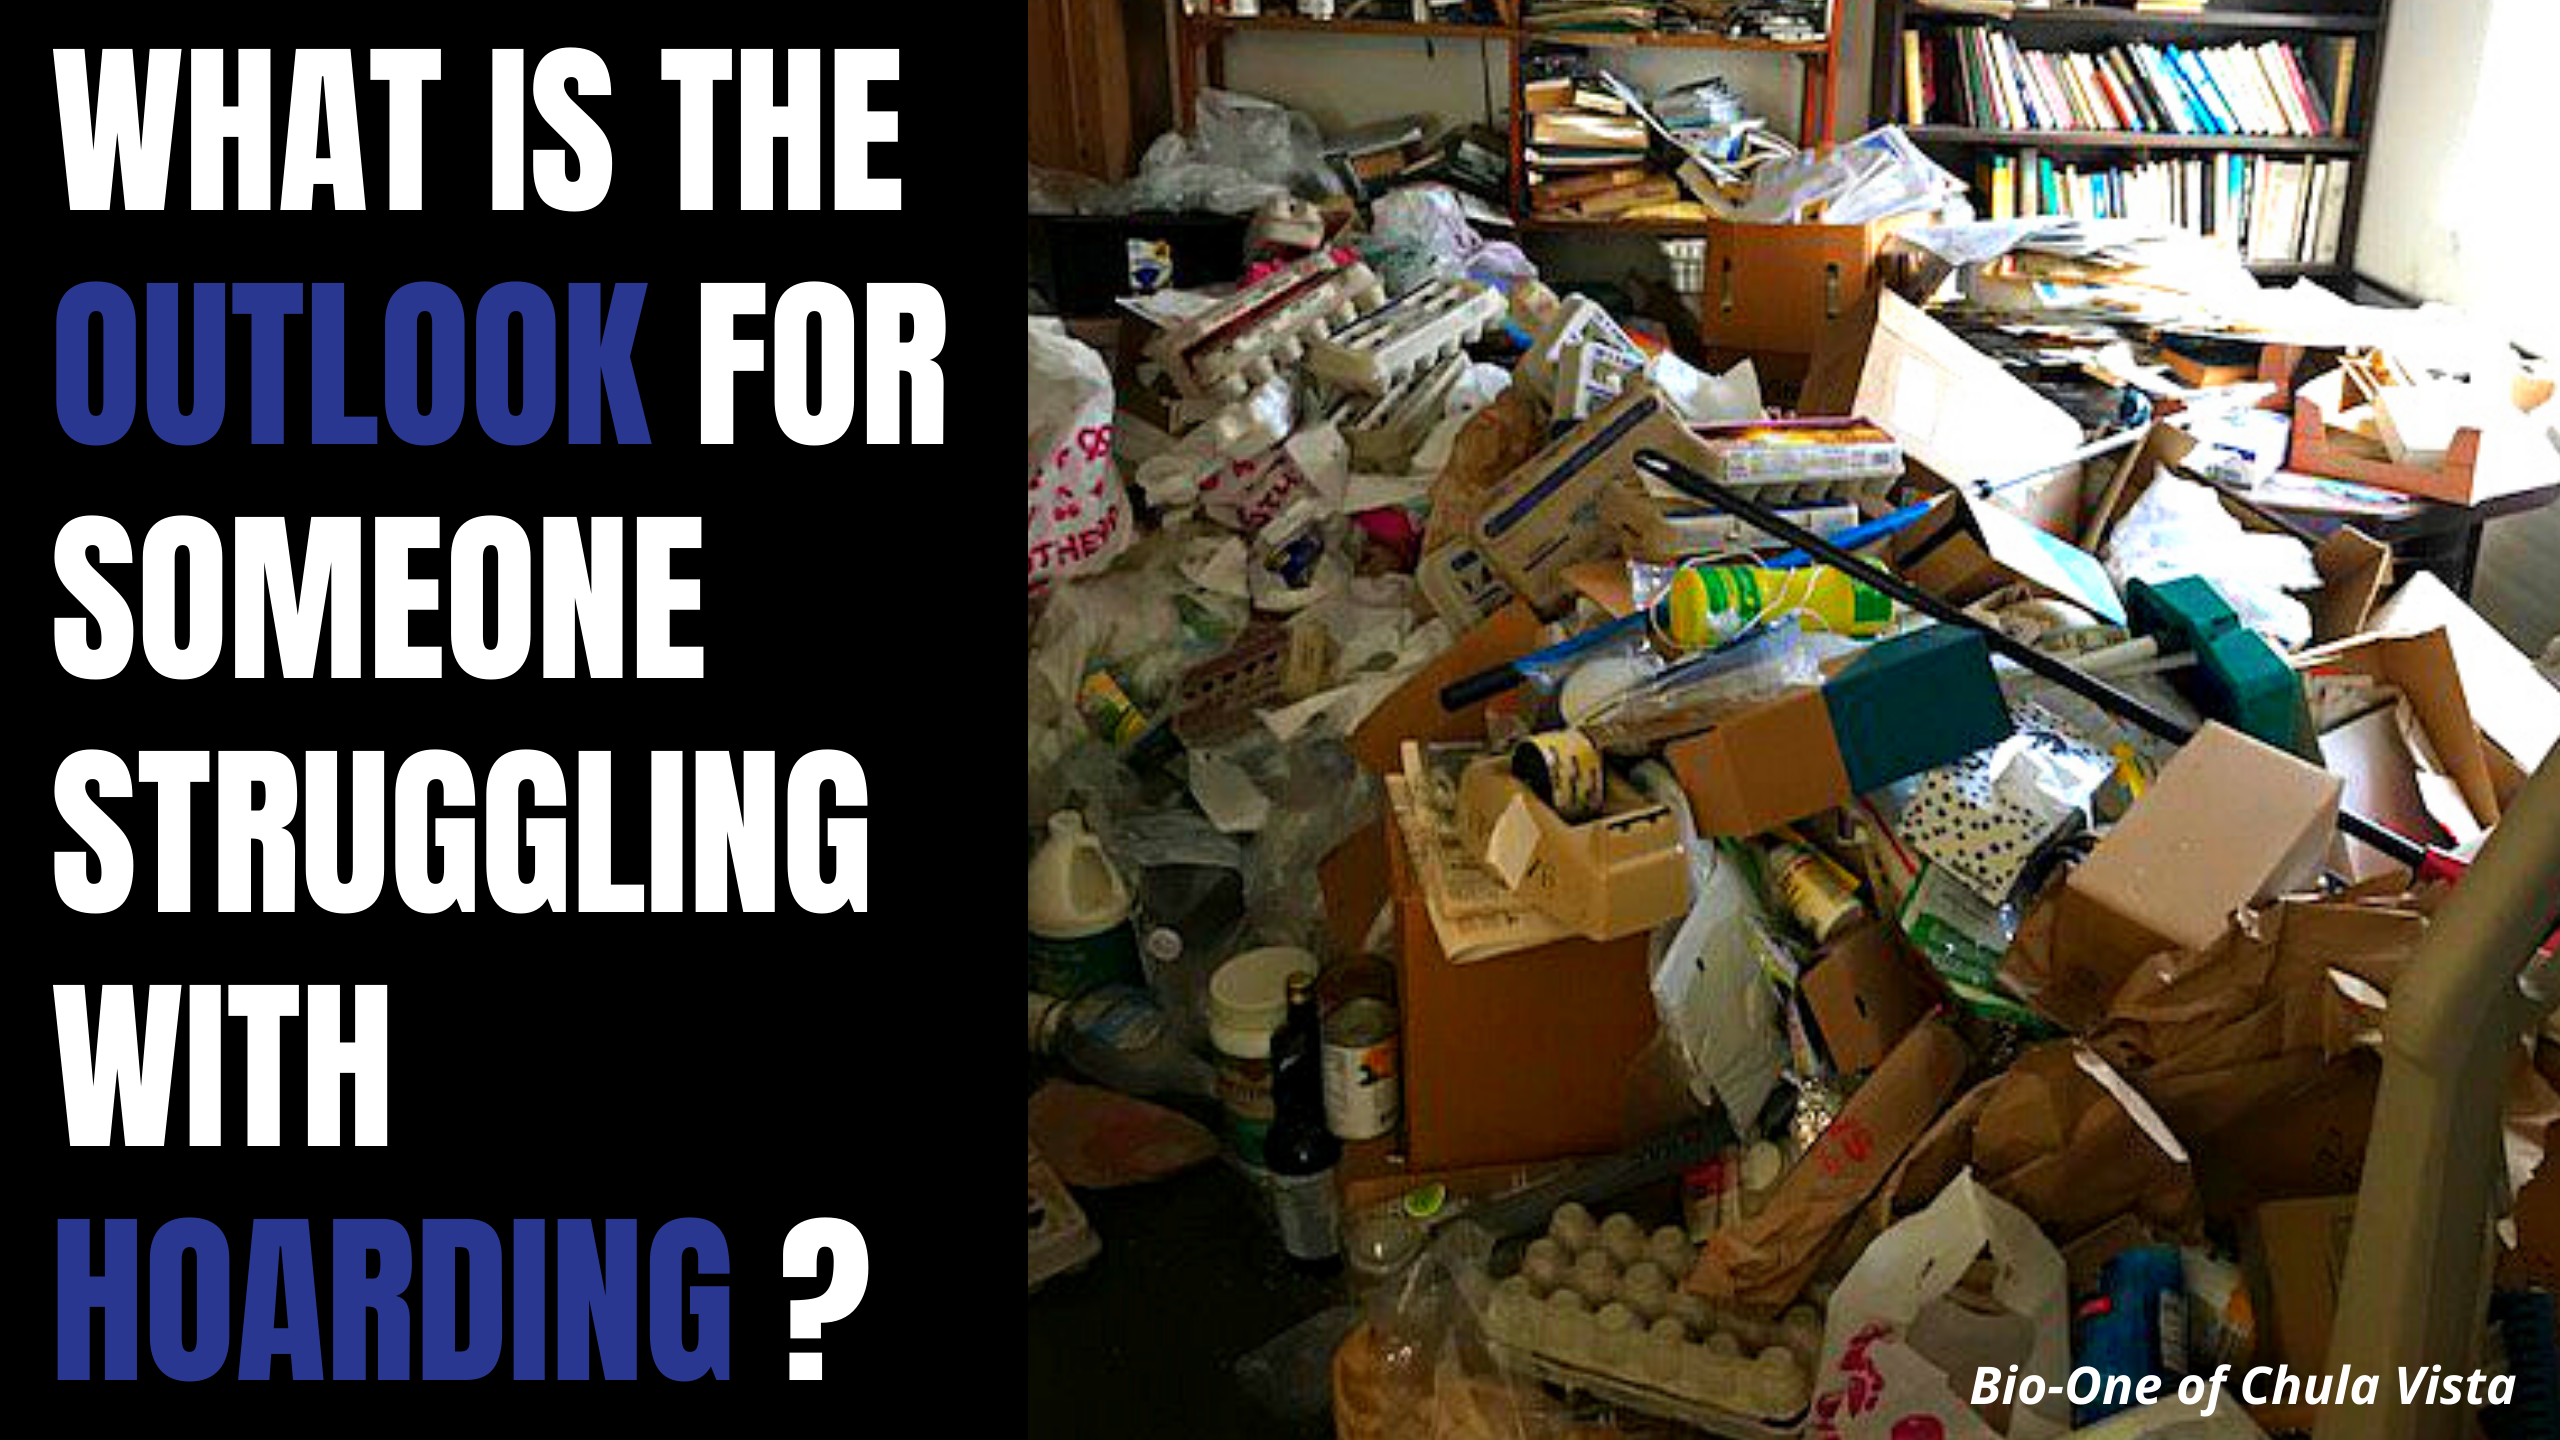 What is the Outlook for someone struggling with Hoarding?